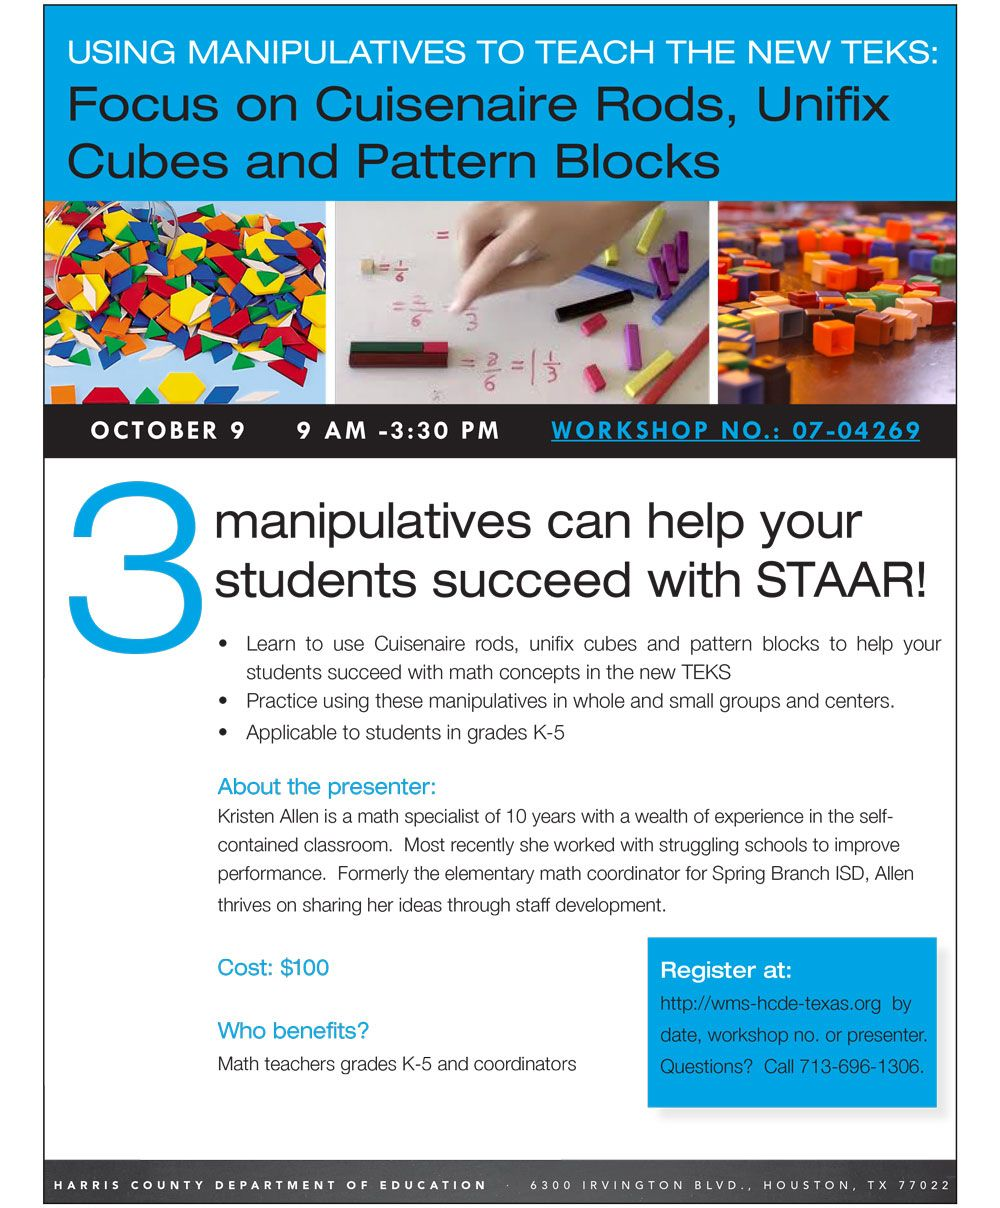 Using Manipulatives To Teach New Teks Three Manipulatives Help Your Students Succeed With Staar On Oct 9 We Focu Cuisenaire Rod Middle School Math Teaching